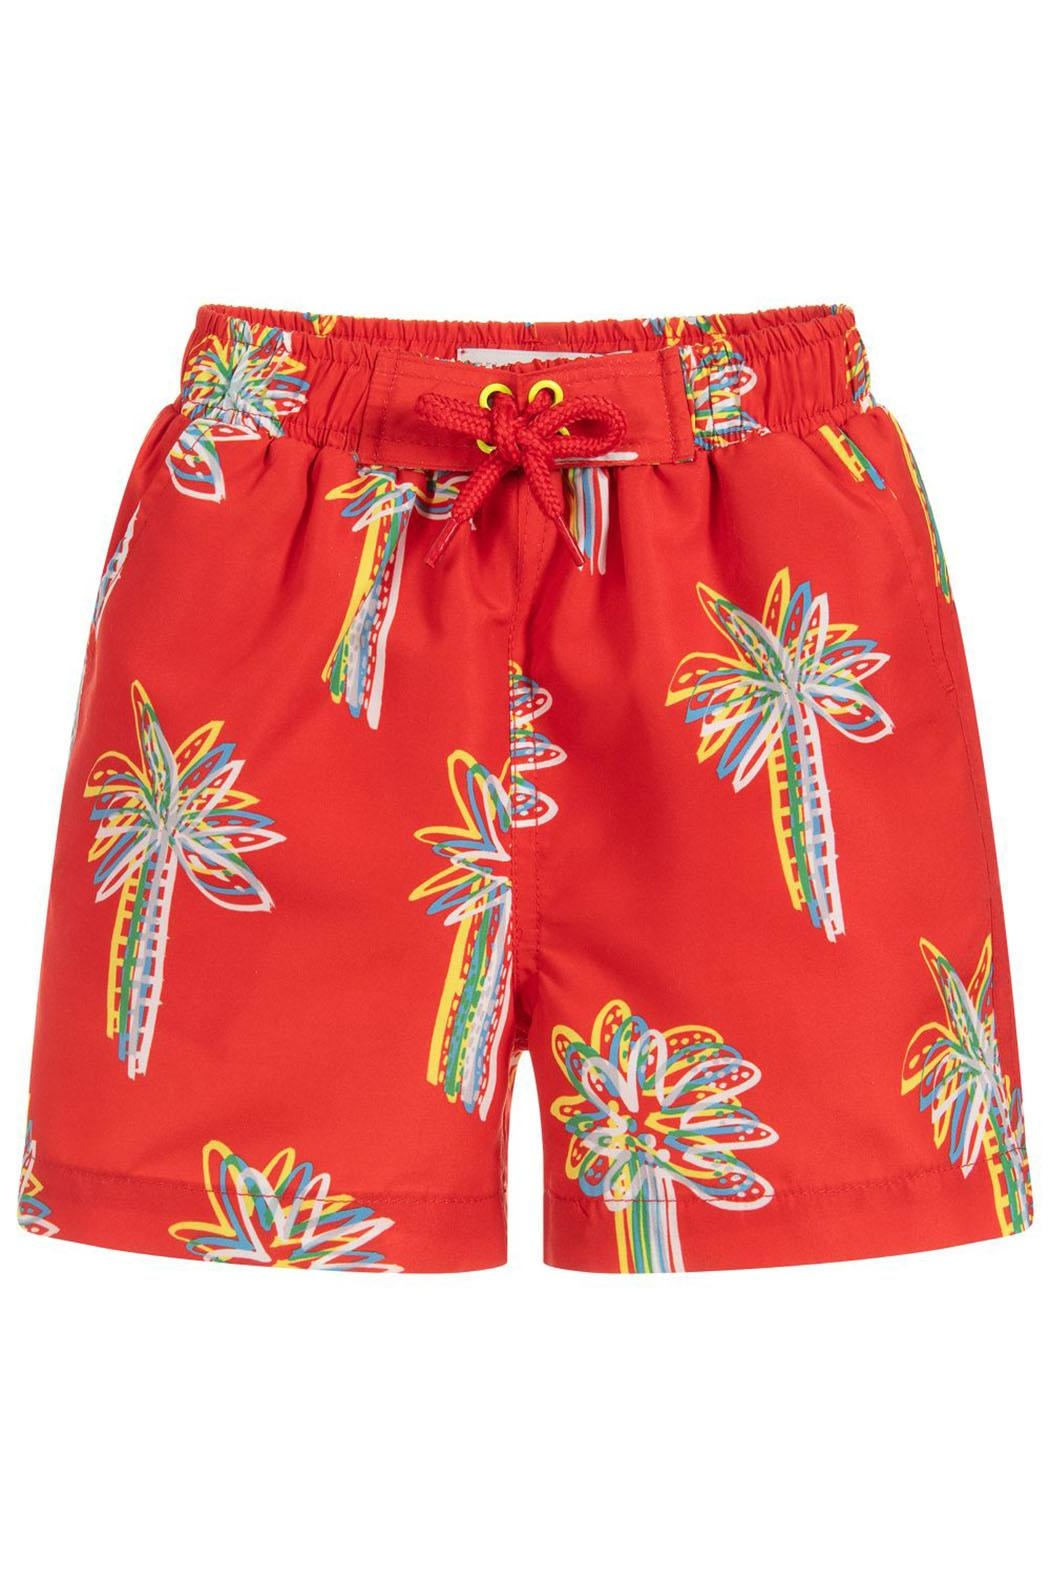 Stella McCartney Kids Red 'Palms' Swim-Shorts - Main Image